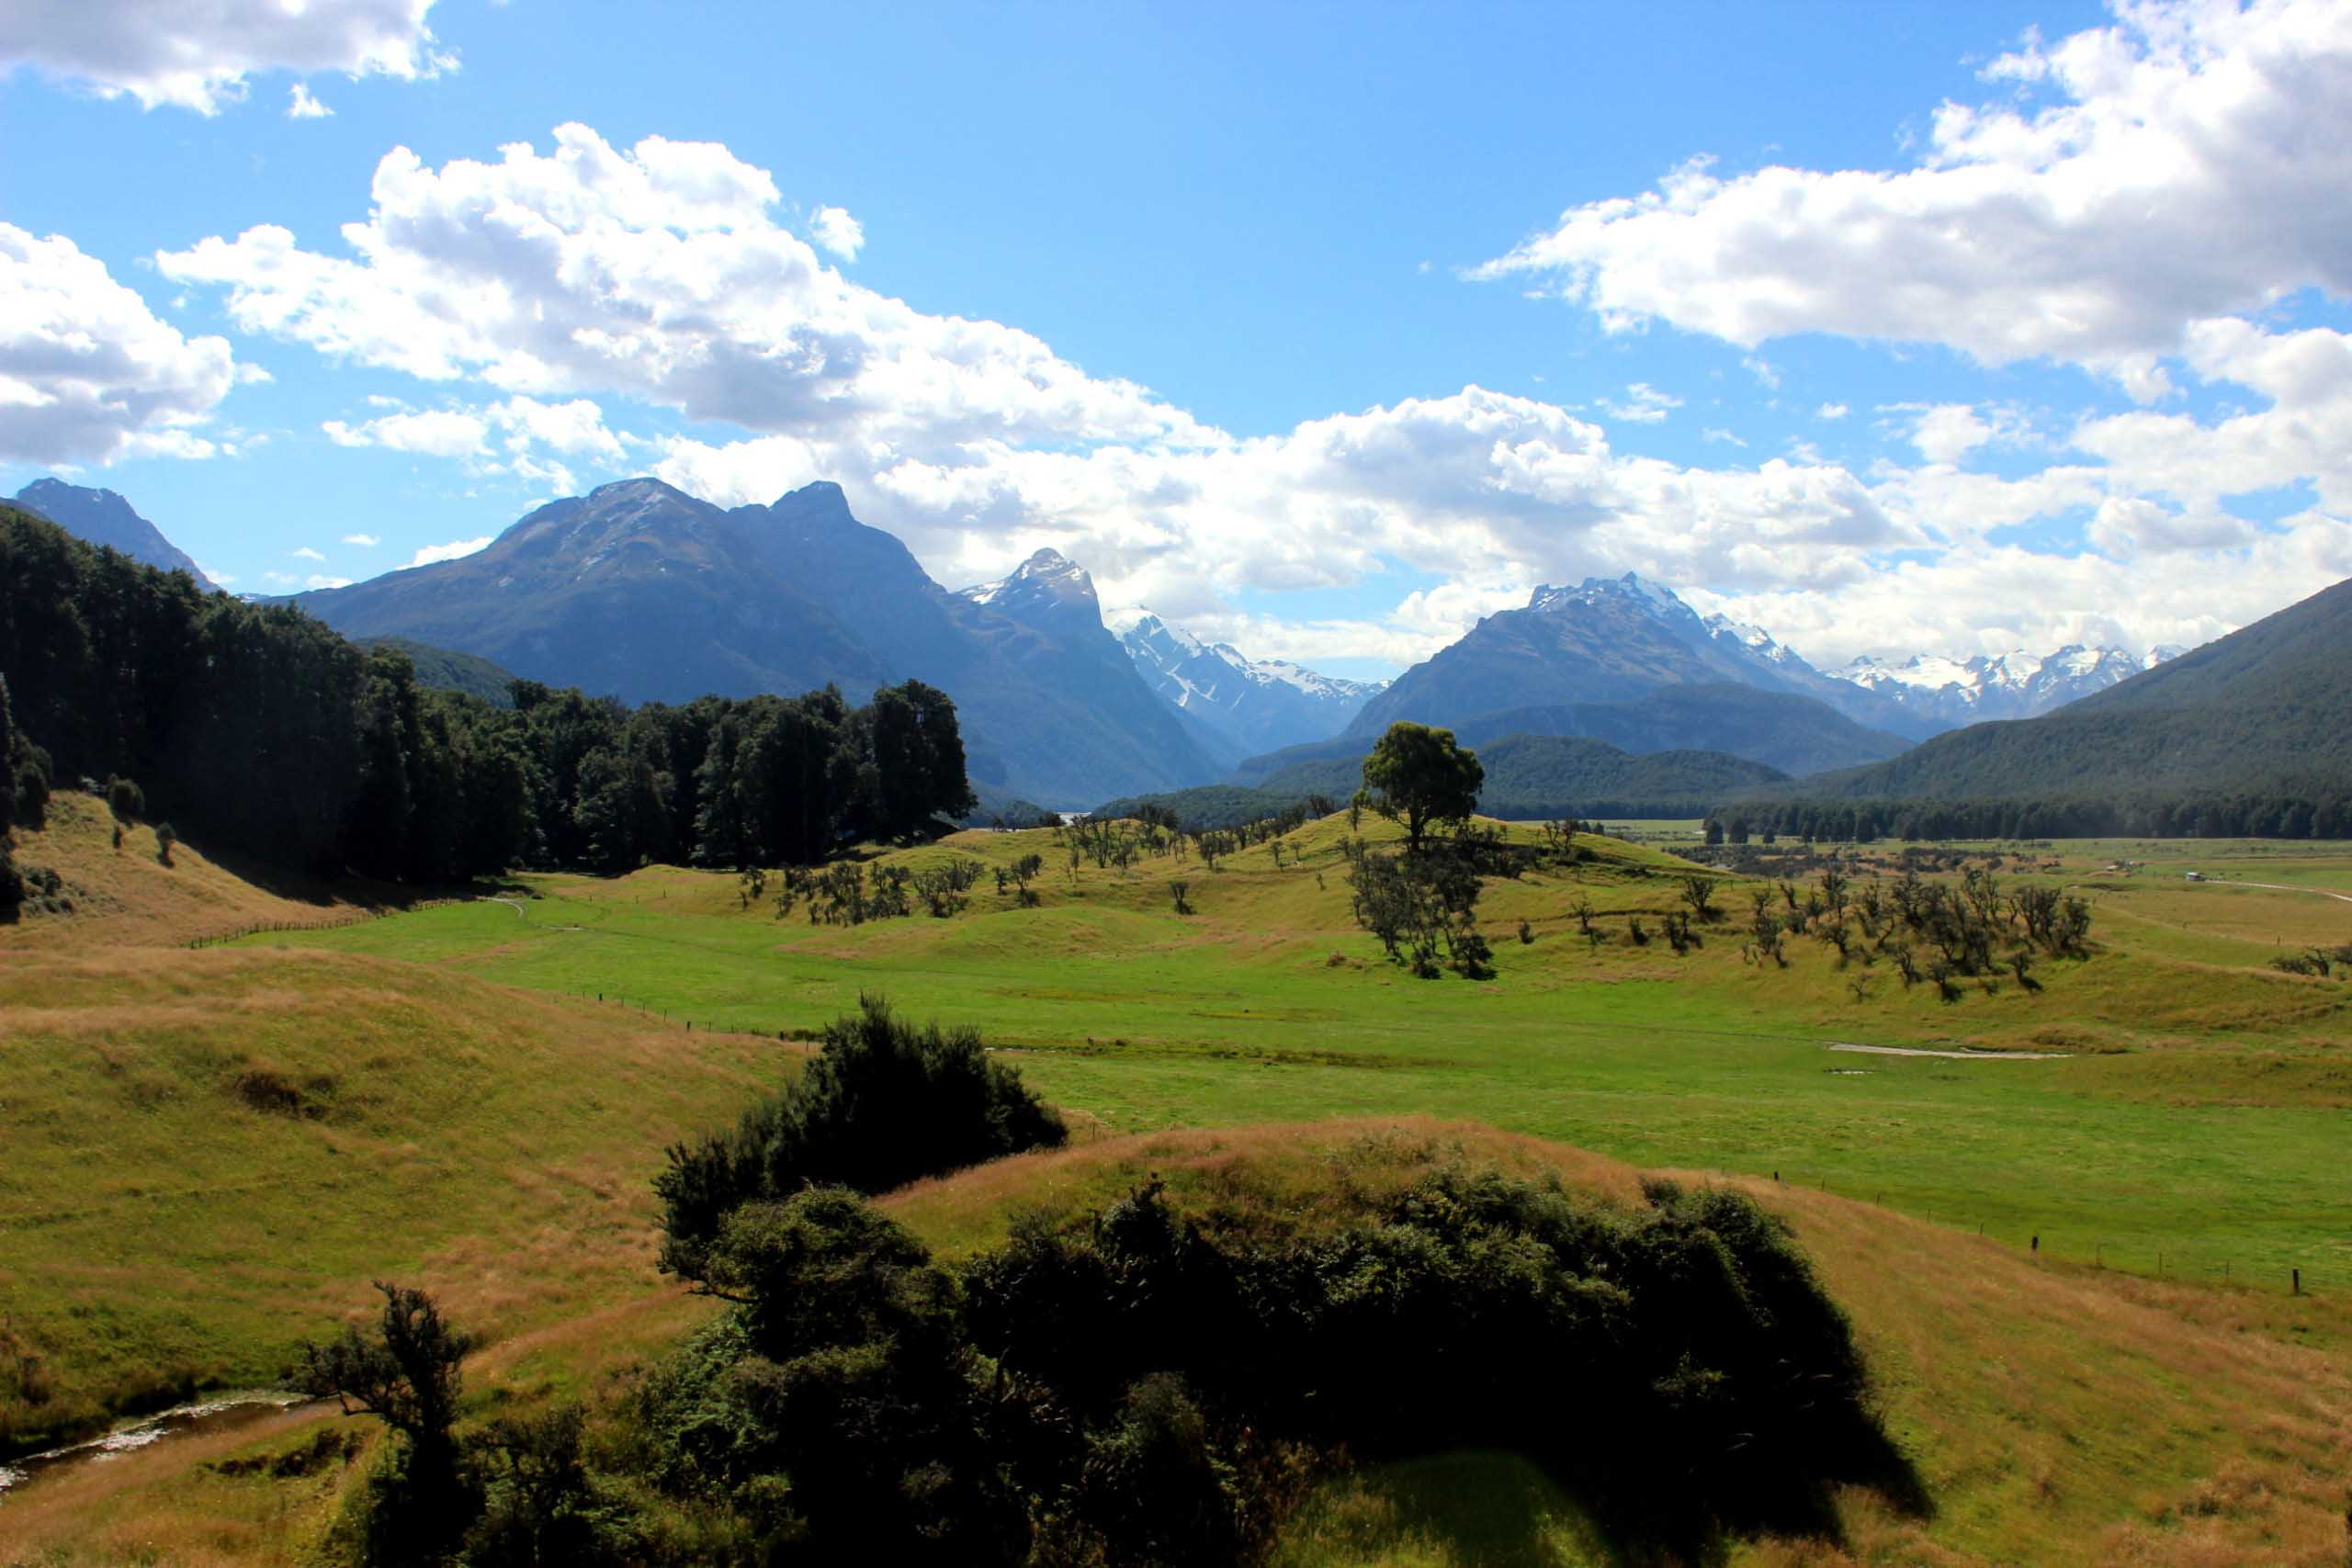 Landscapes of Glenorchy